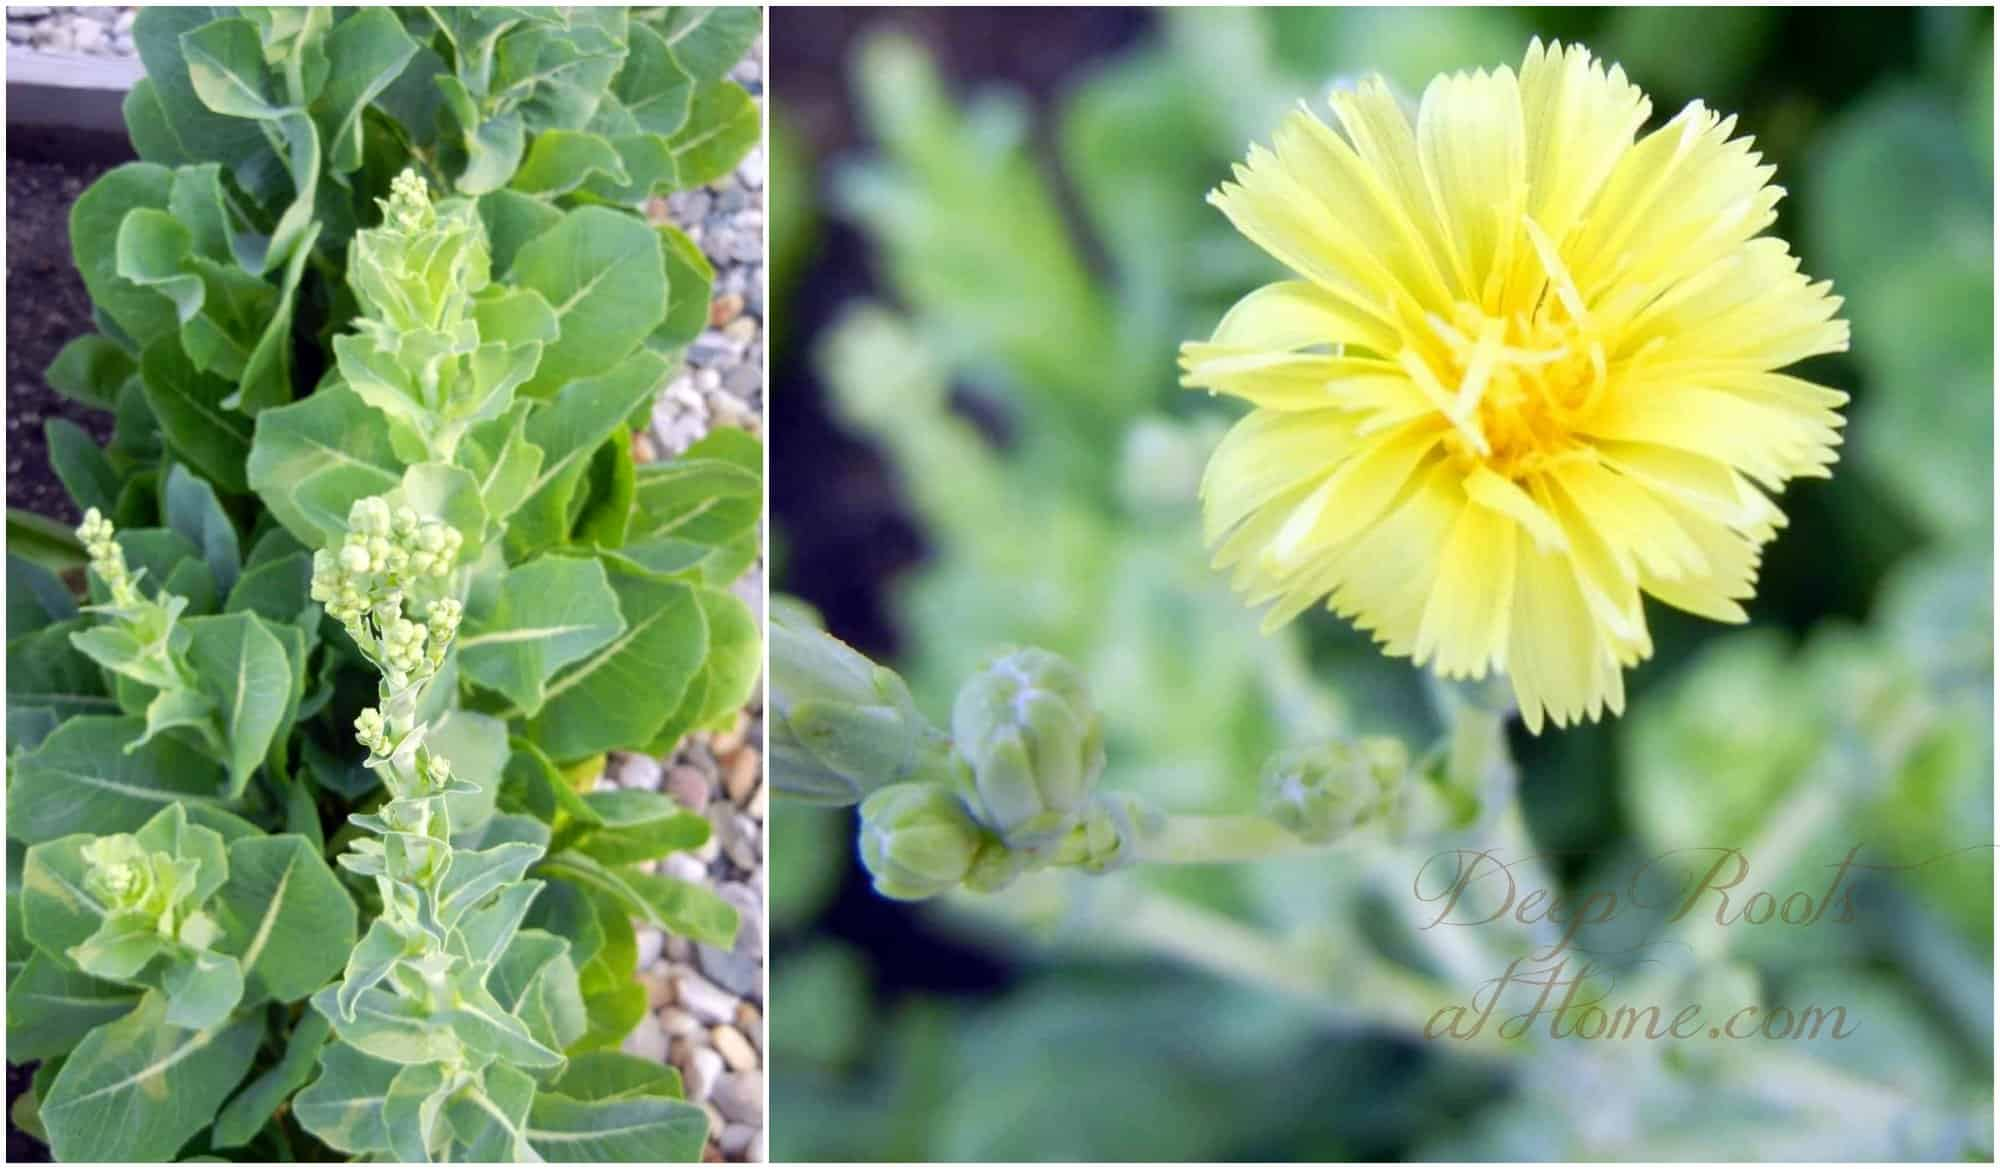 Gathering Lettuce Seed ~ Seed Saving Tips. Romaine lettuce going to seed